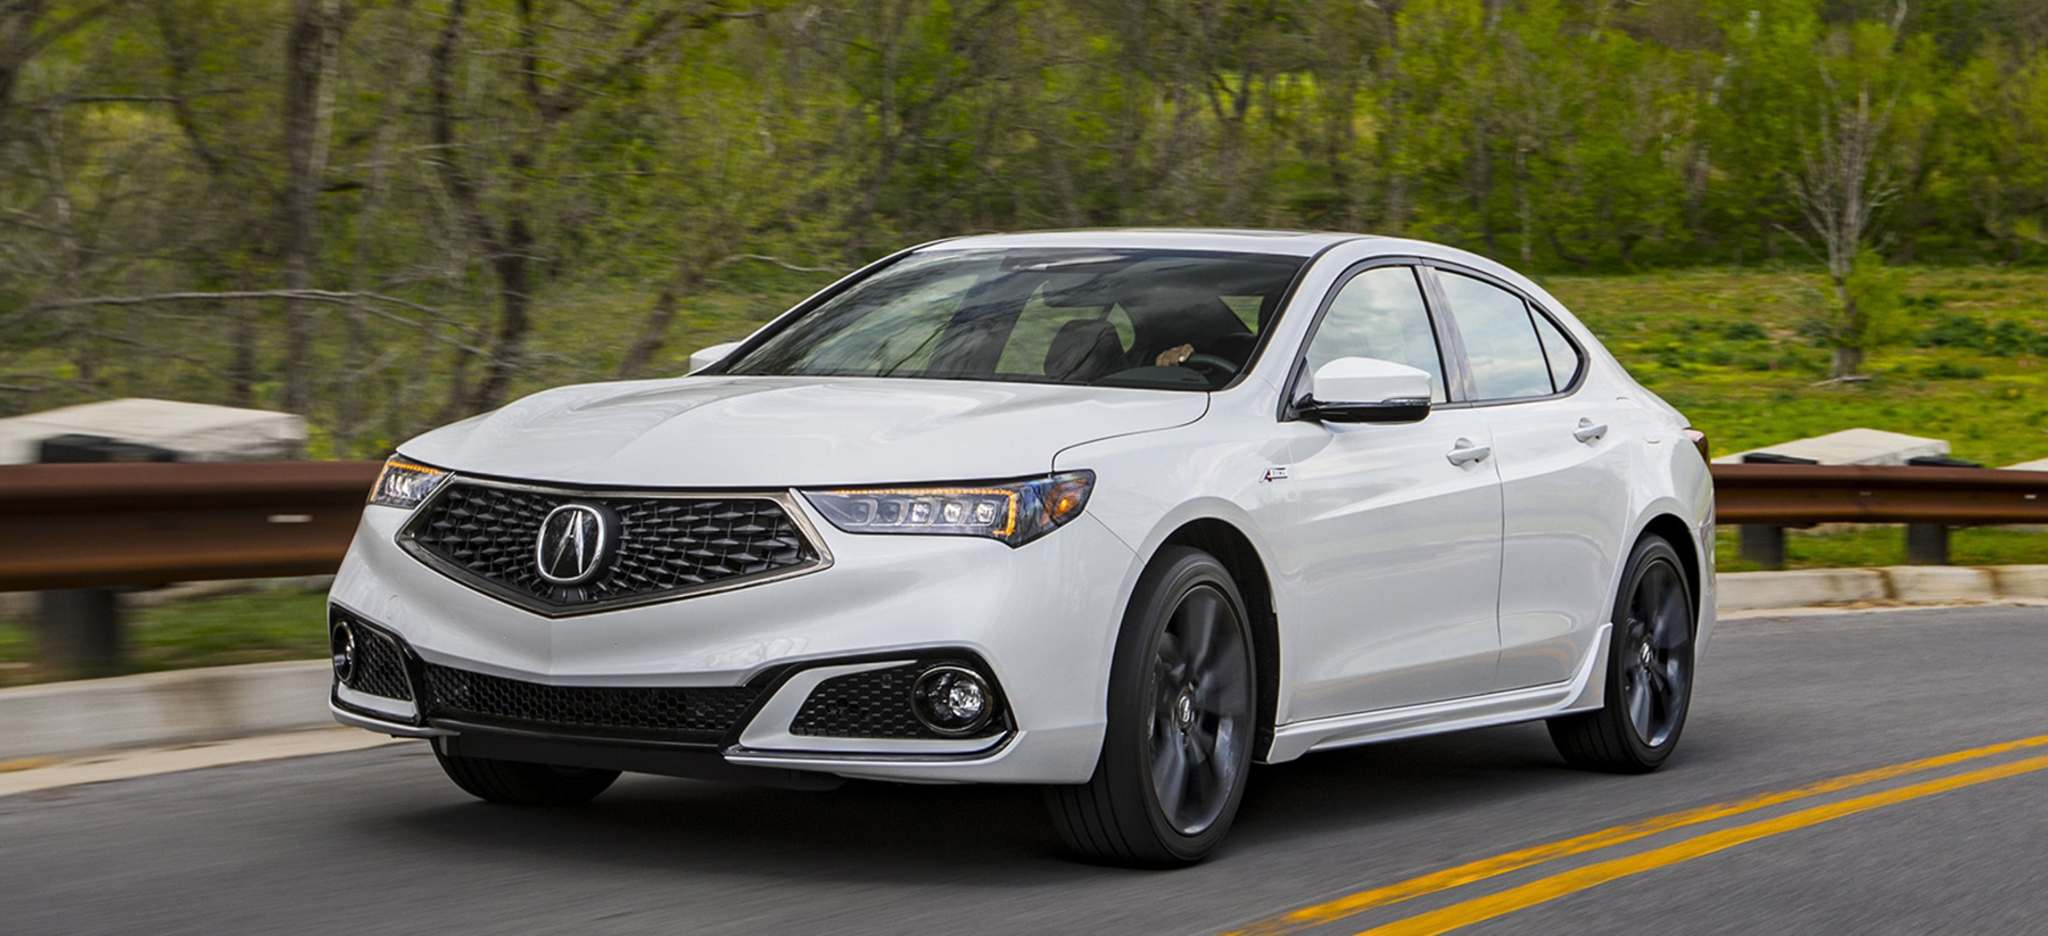 The 2018 Acura TLX features a handsome new grille.